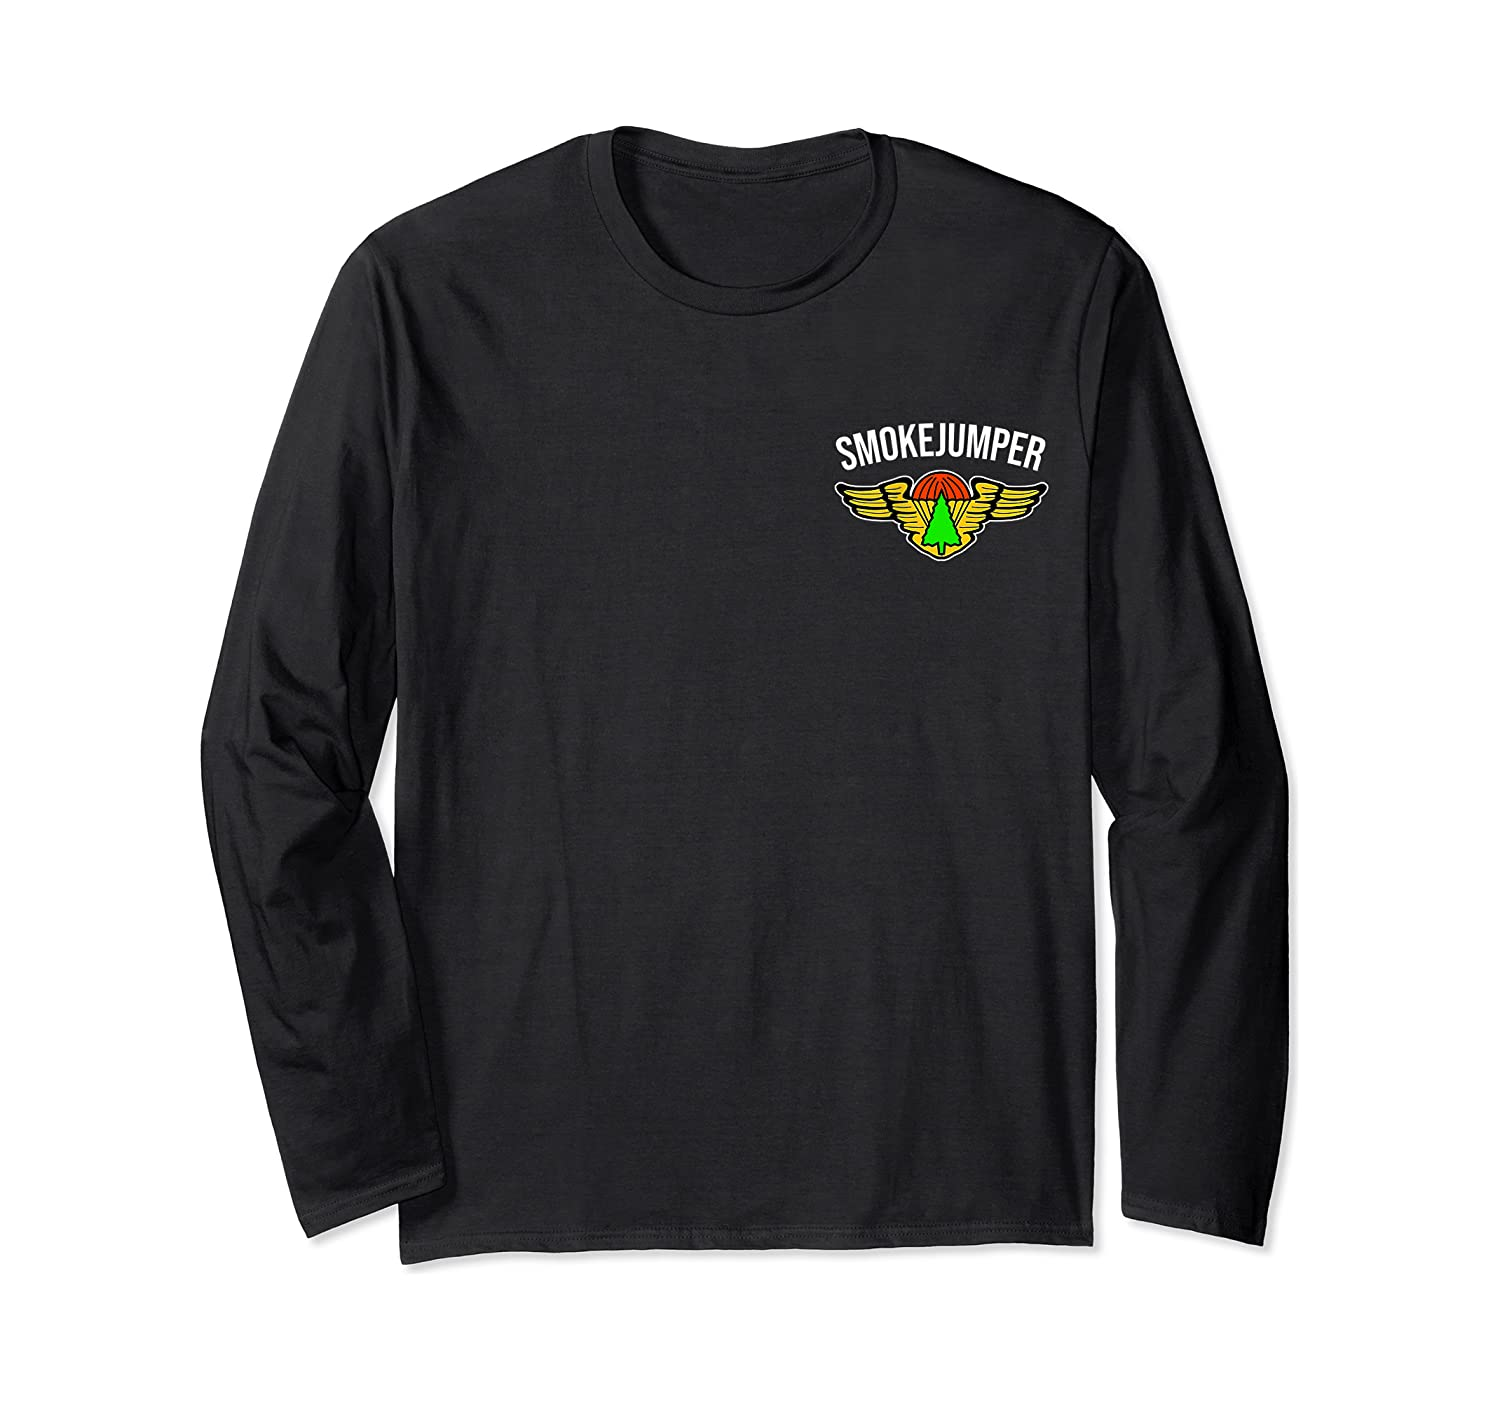 Smokejumper For Shirts Long Sleeve T-shirt